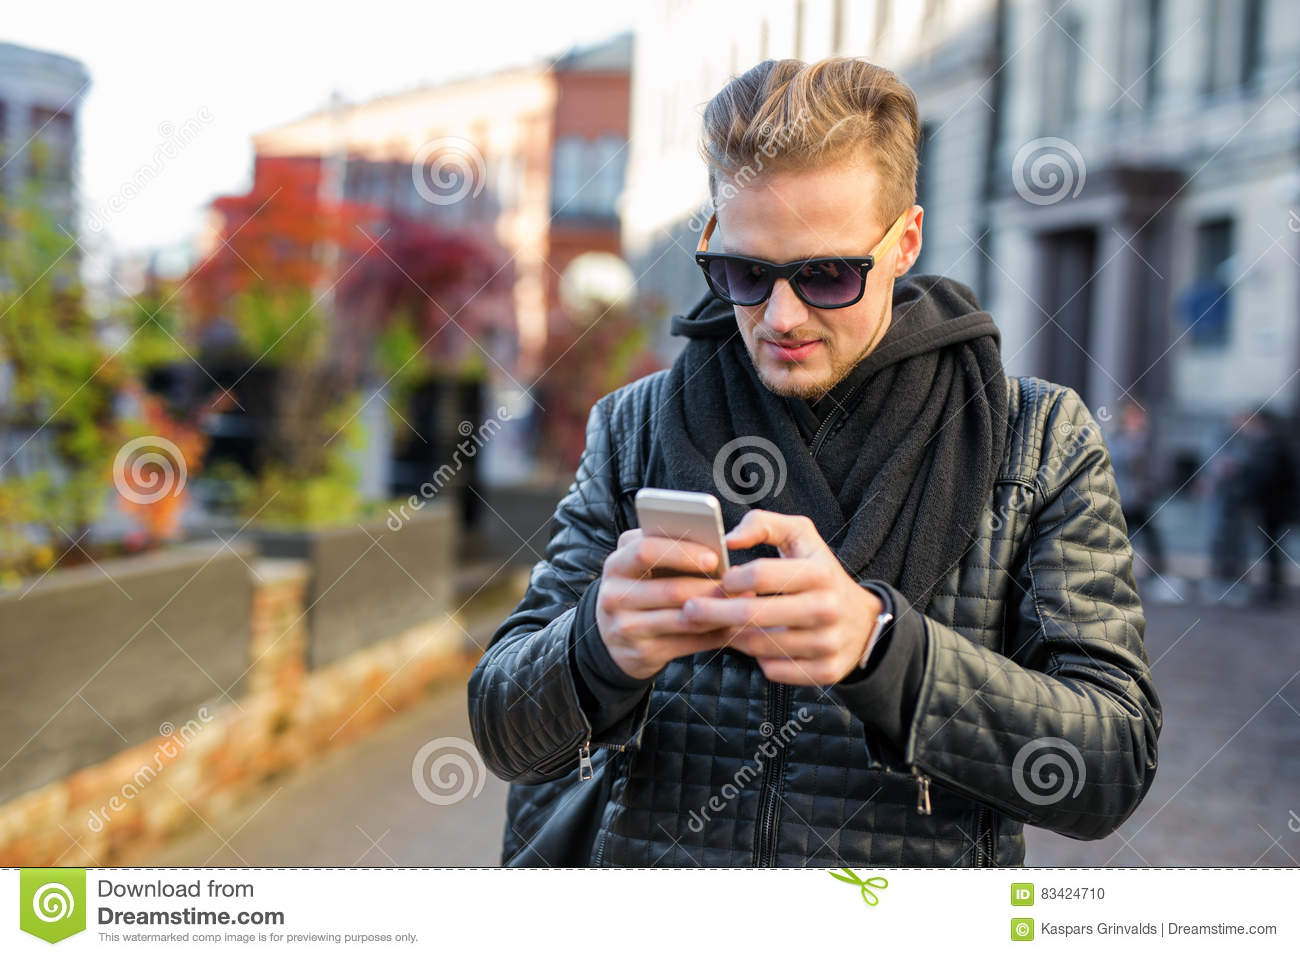 Handsome man using his smartphone